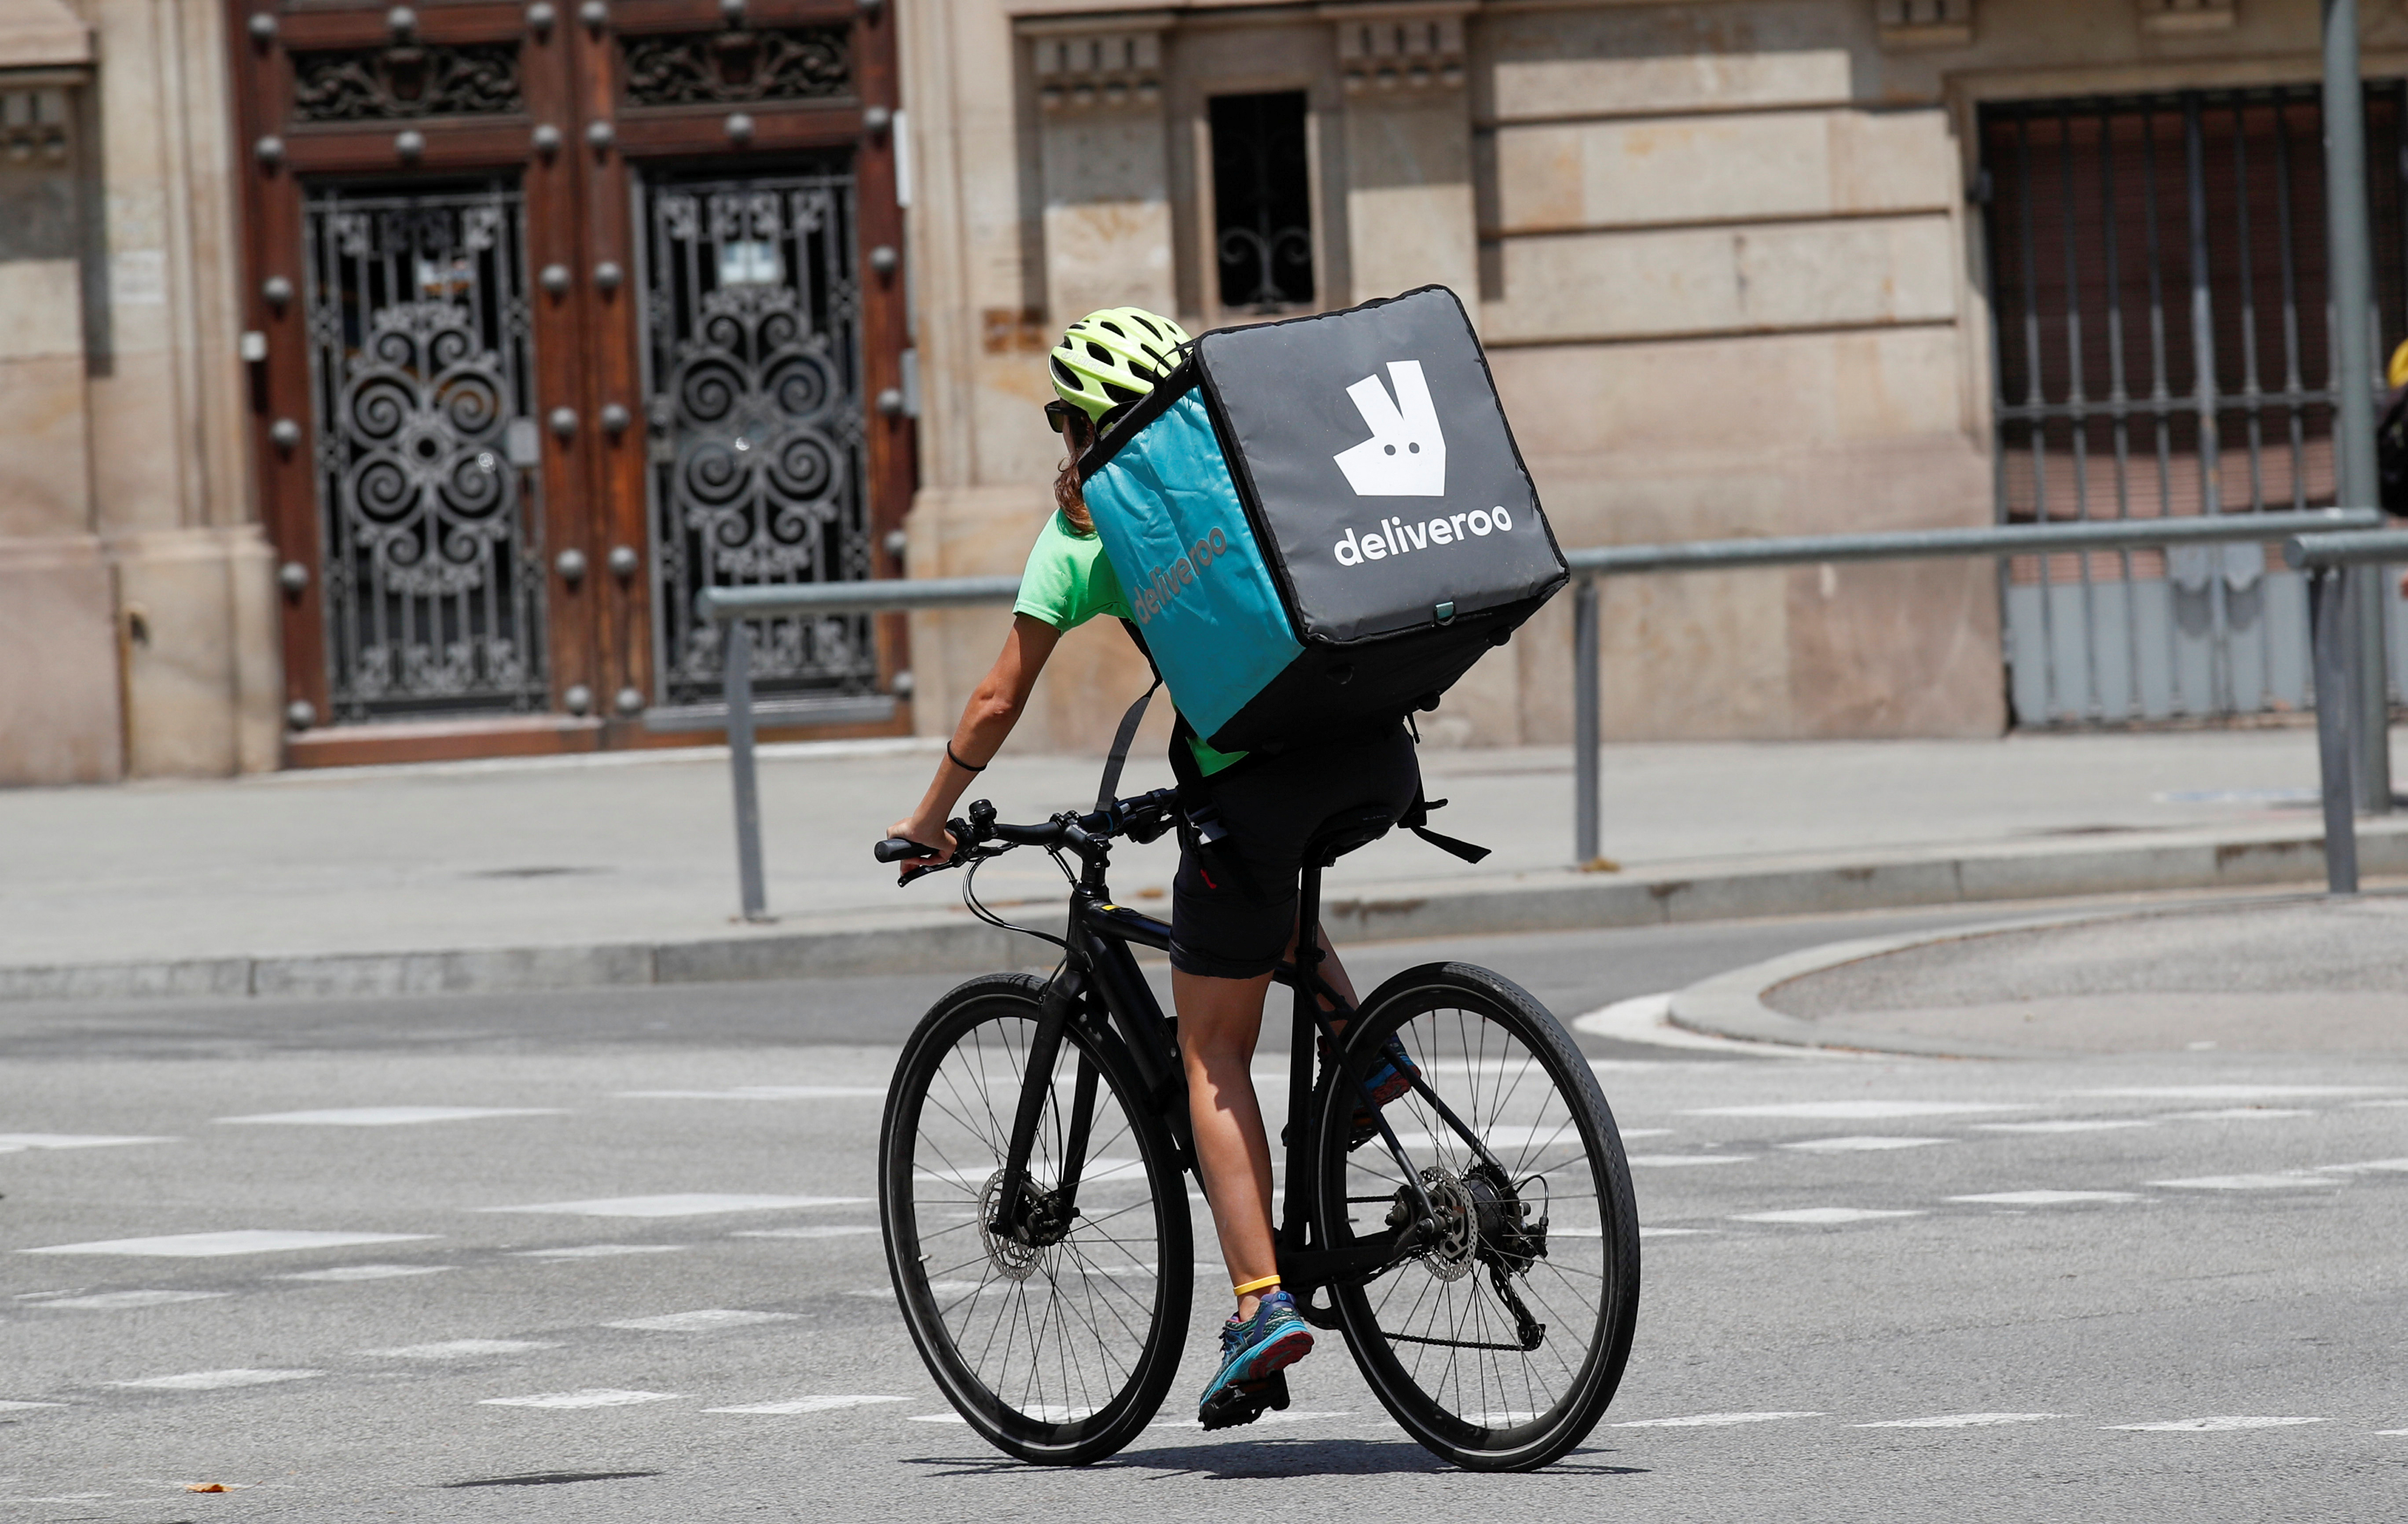 A biker wearing a Deliveroo backpack drives in the central Barcelona, Spain, July 23, 2019. REUTERS/Albert Gea/File photo